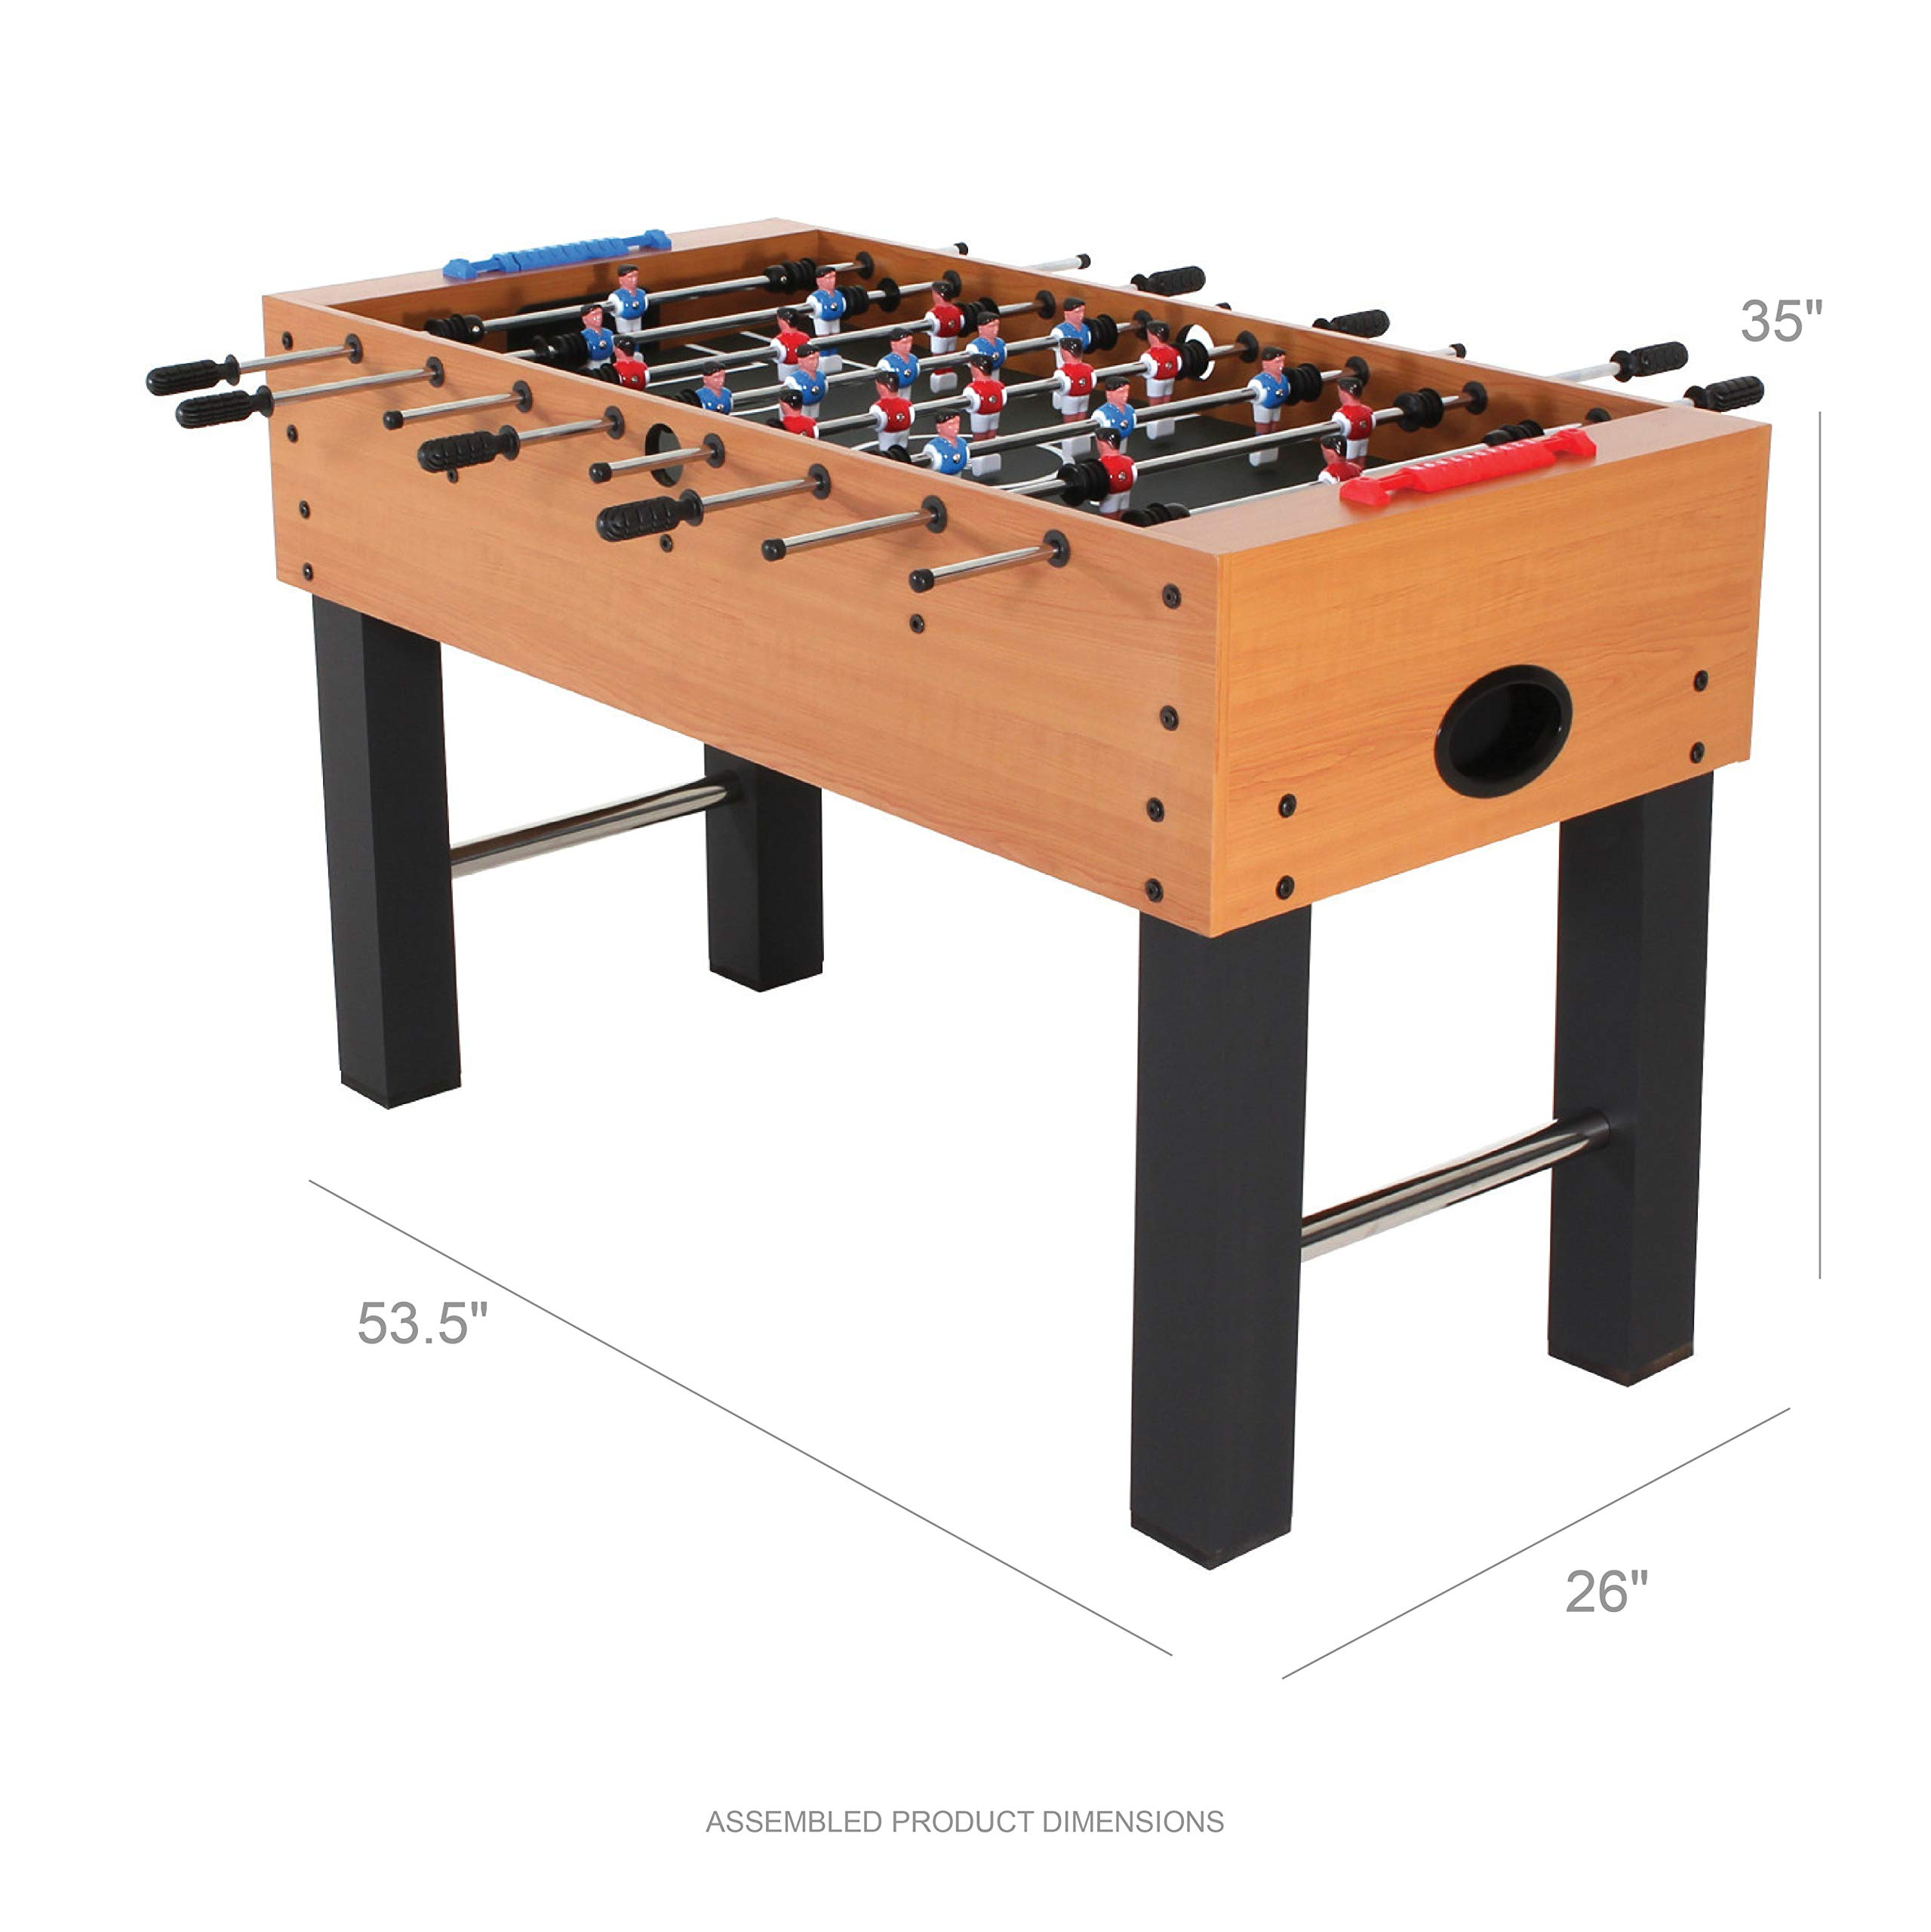 5. The American Charger Legend 52-inch Foosball Table